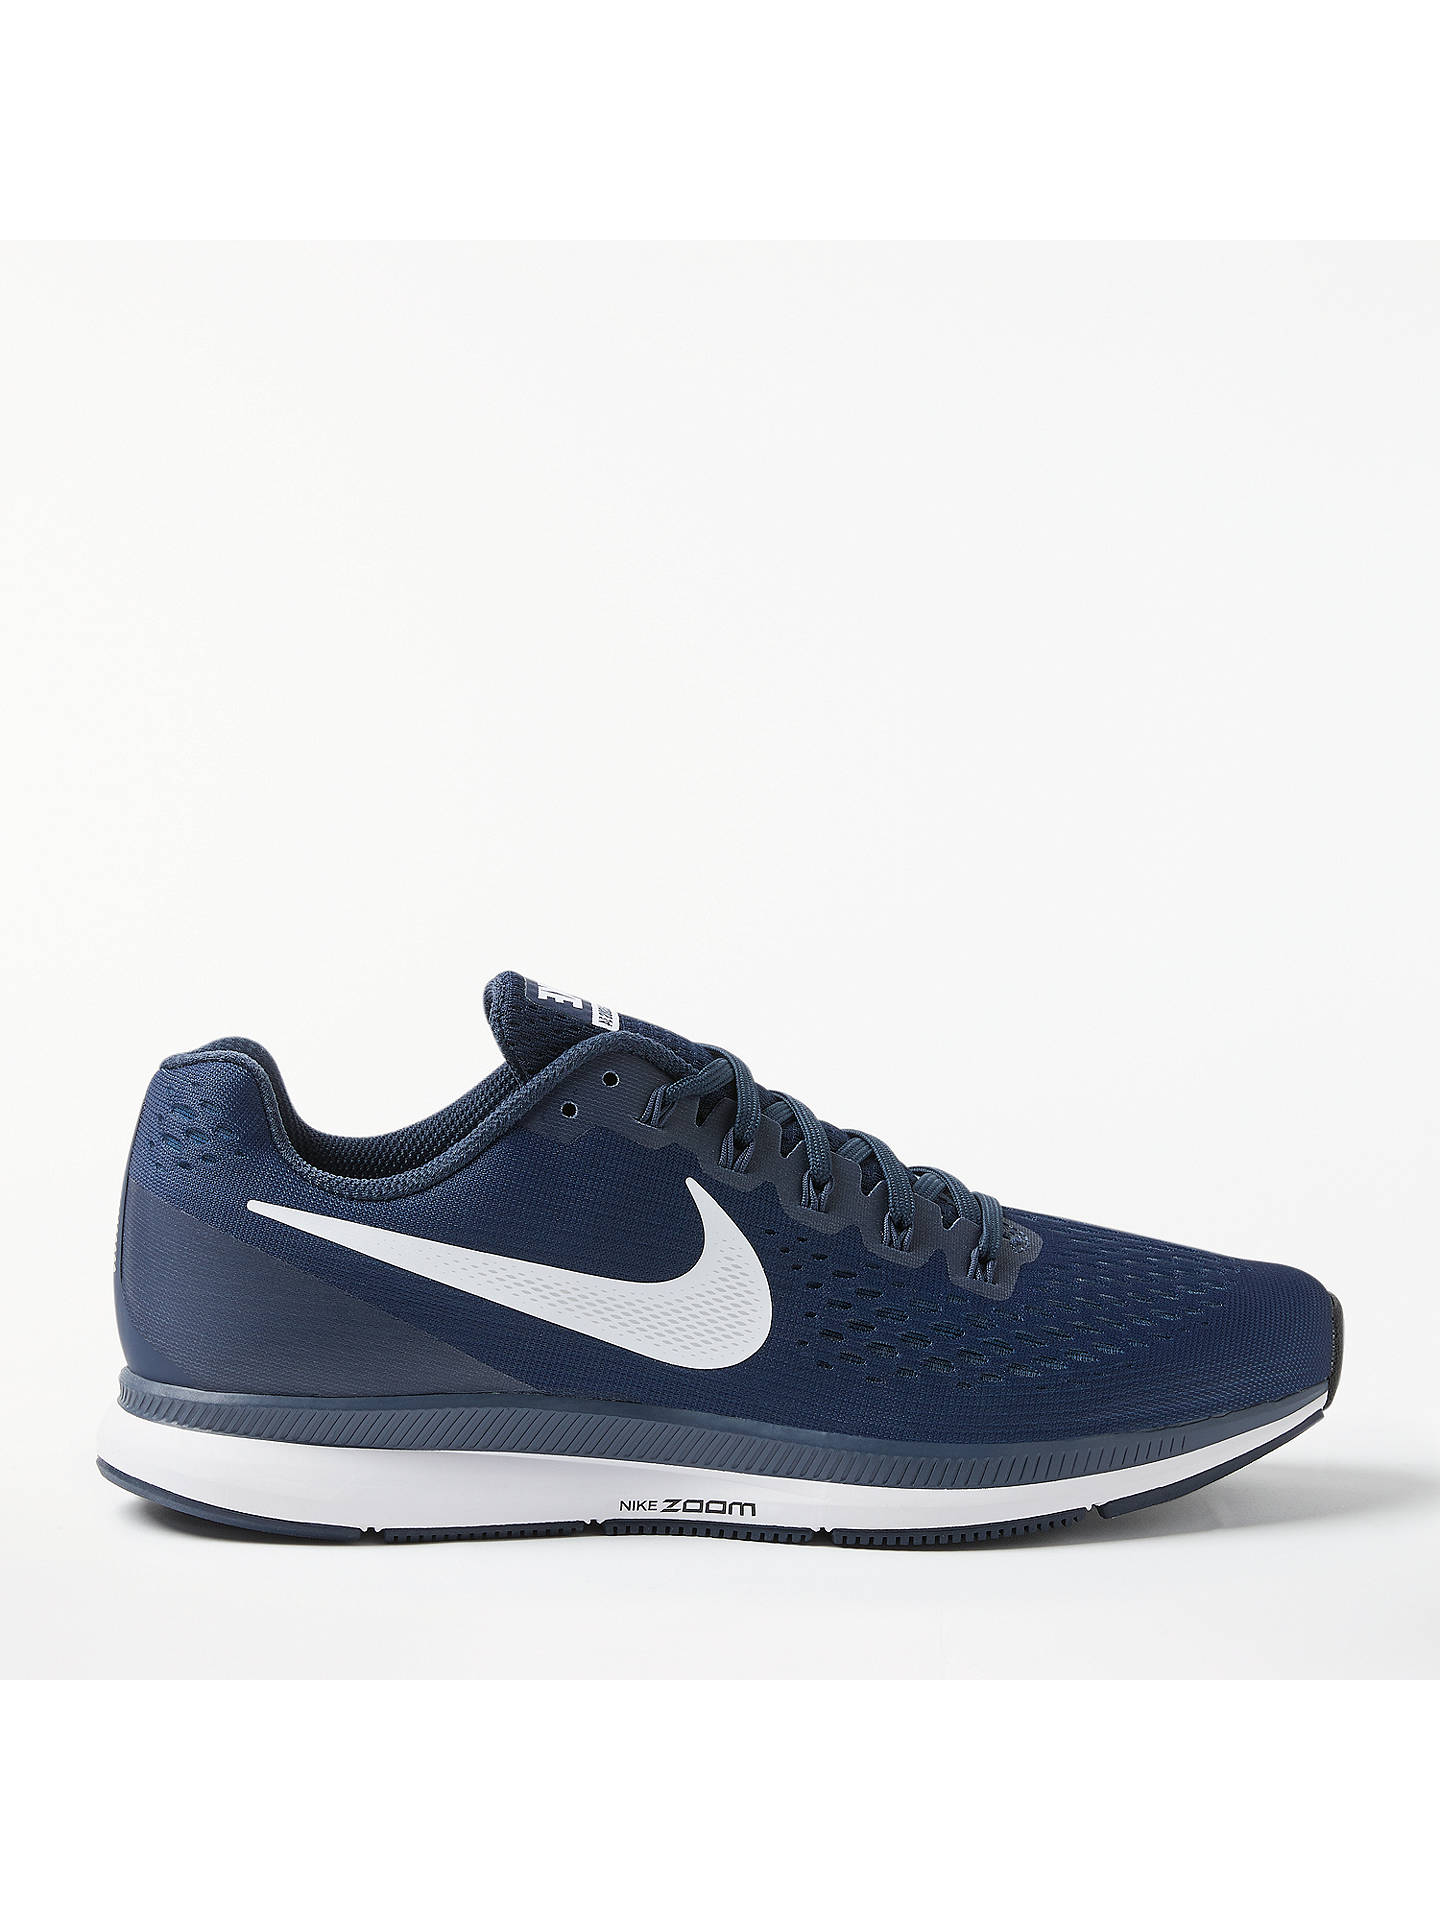 best service d99c8 6f302 Nike Air Zoom Pegasus 34 Men's Running Shoes at John Lewis ...